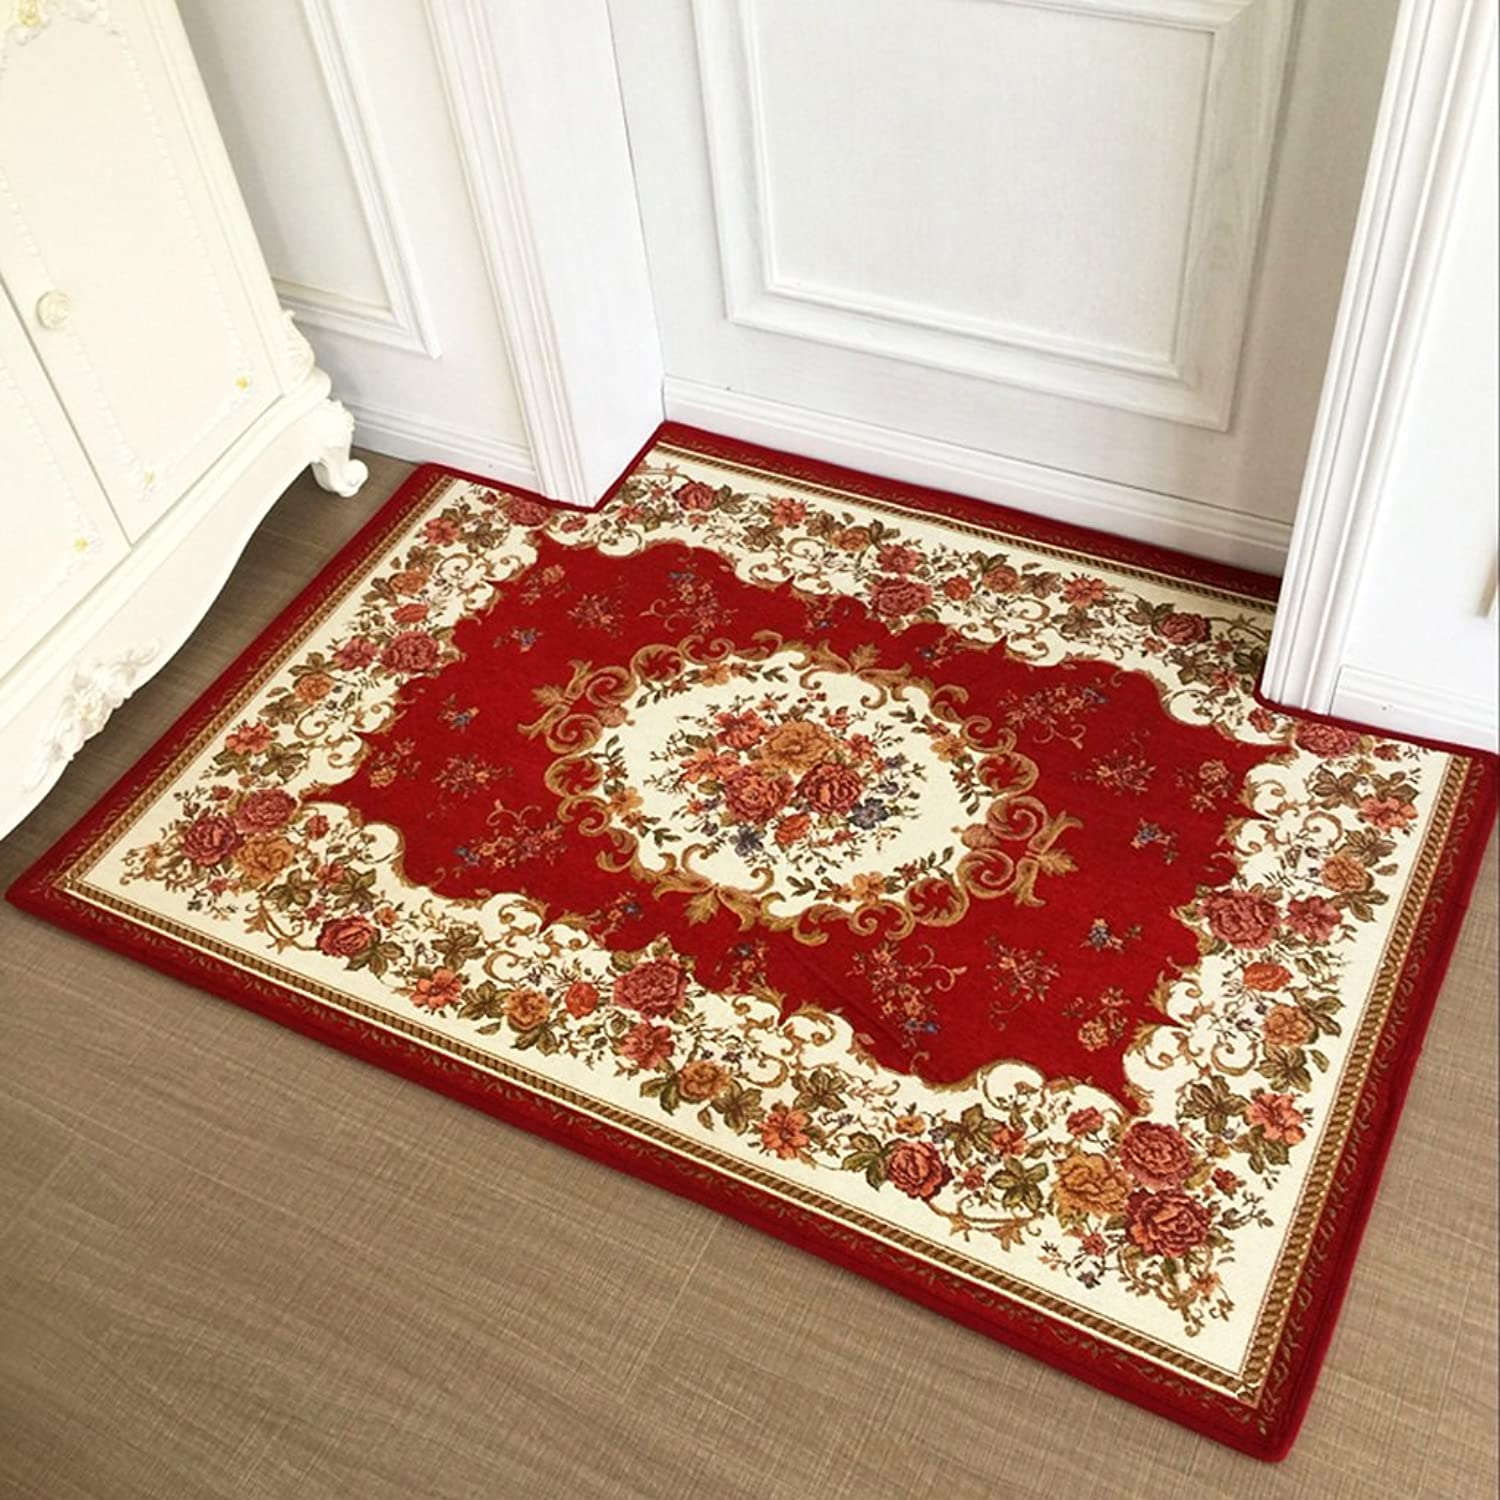 Mats Door Mats Home Entry Doormats Fashion Non-Slip Carpets Water Absorbent Non-Slip Mats Bedside Carpets Bathroom Entry Mats Soft and Comfortable (color   Red, Size   120  180cm)